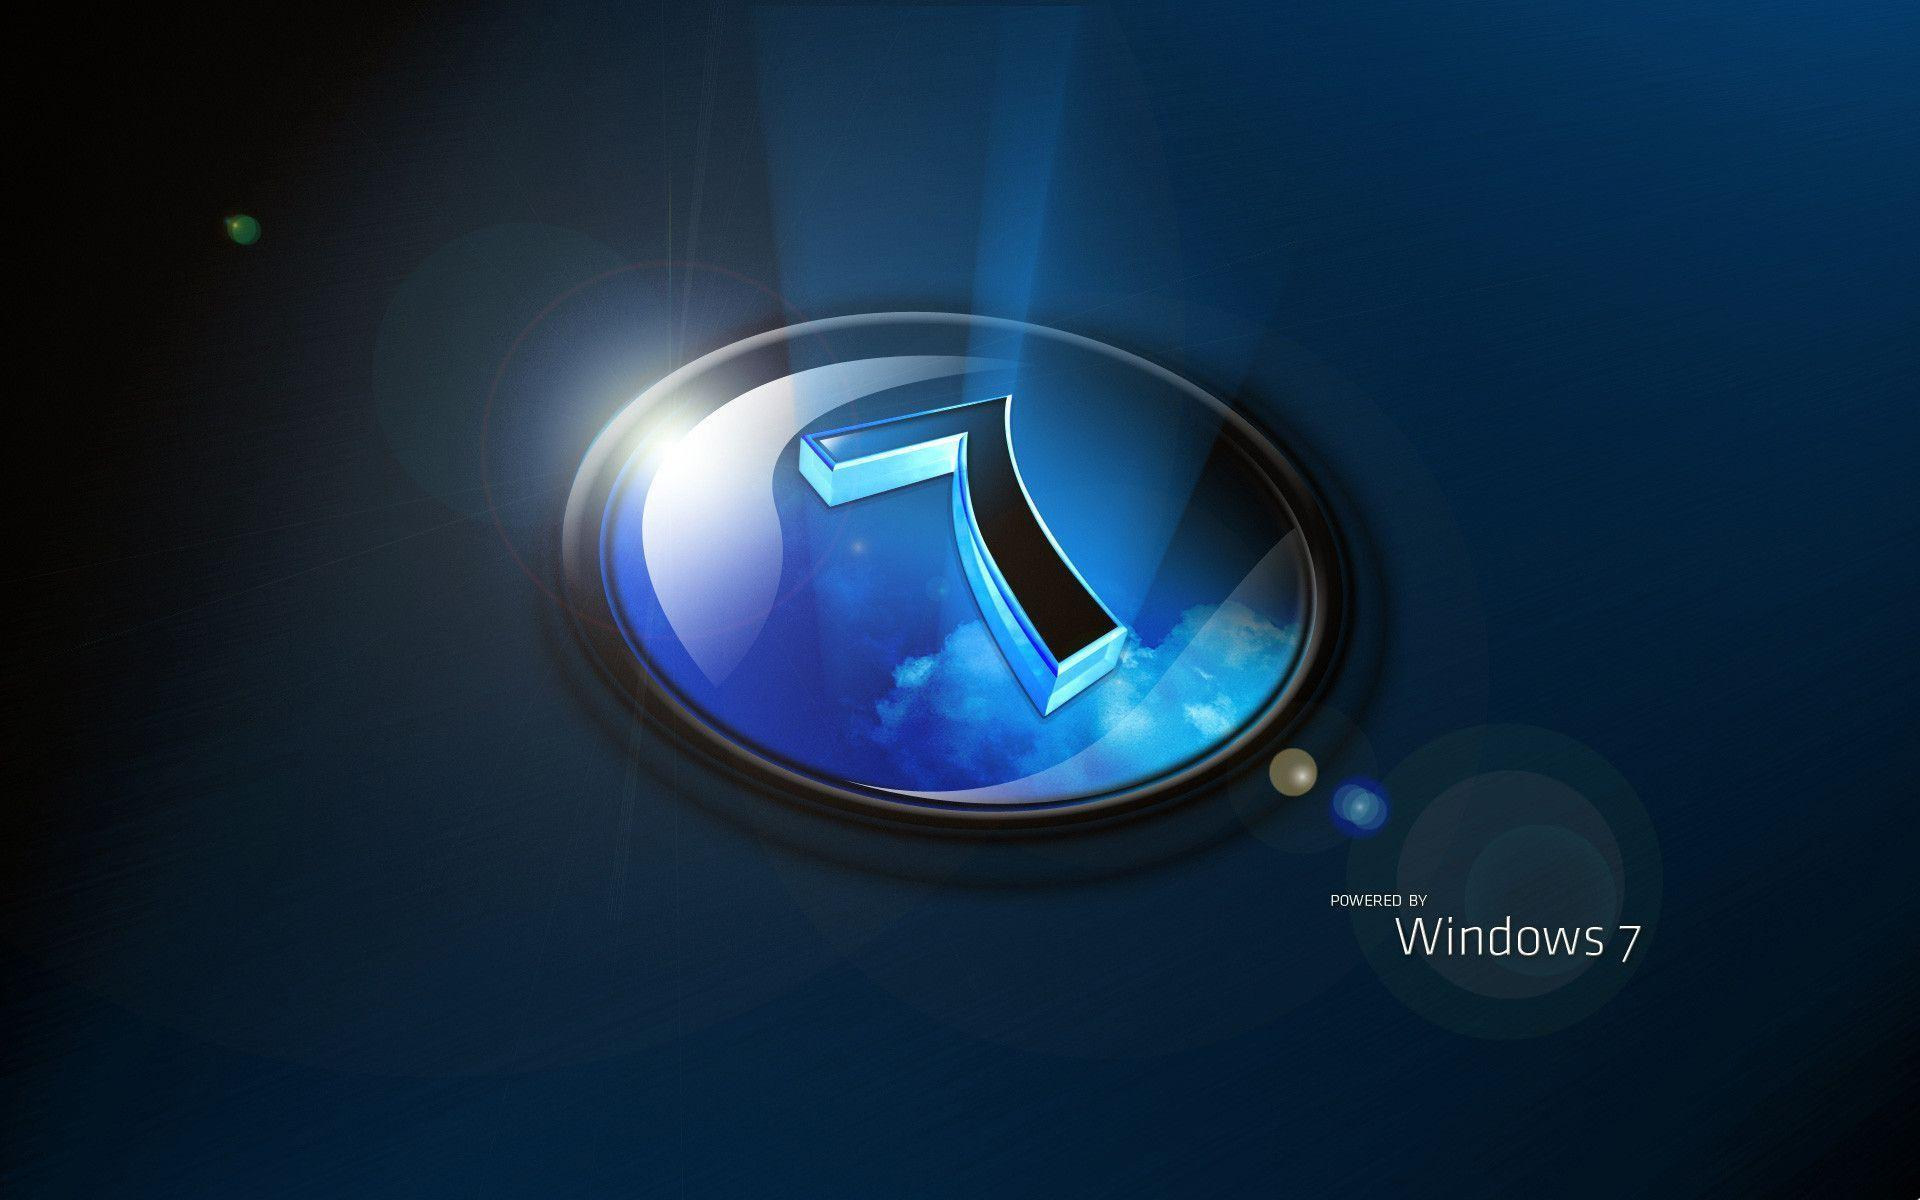 Windows 7 Reflective Wallpapers | HD Wallpapers